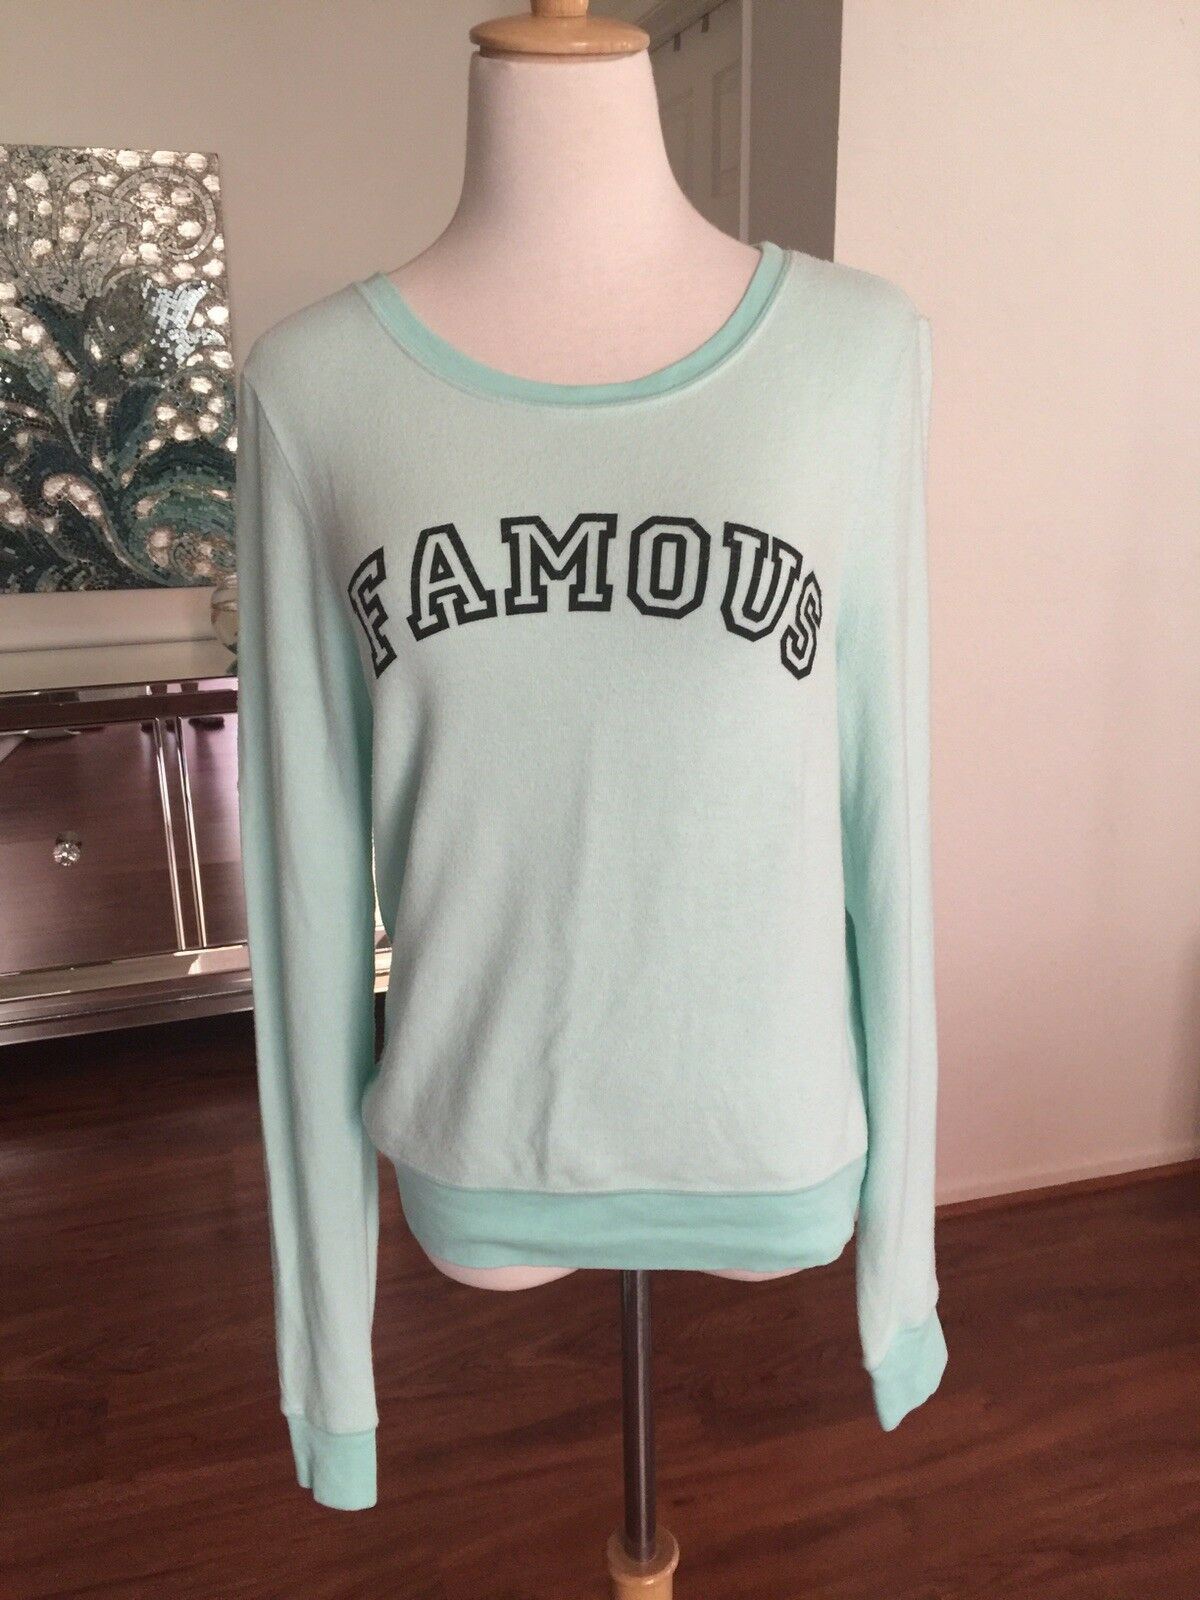 NWT Wildfox  Famous    Very Soft Sweatshirt Womens Size Medium SOLD OUT 5707a4